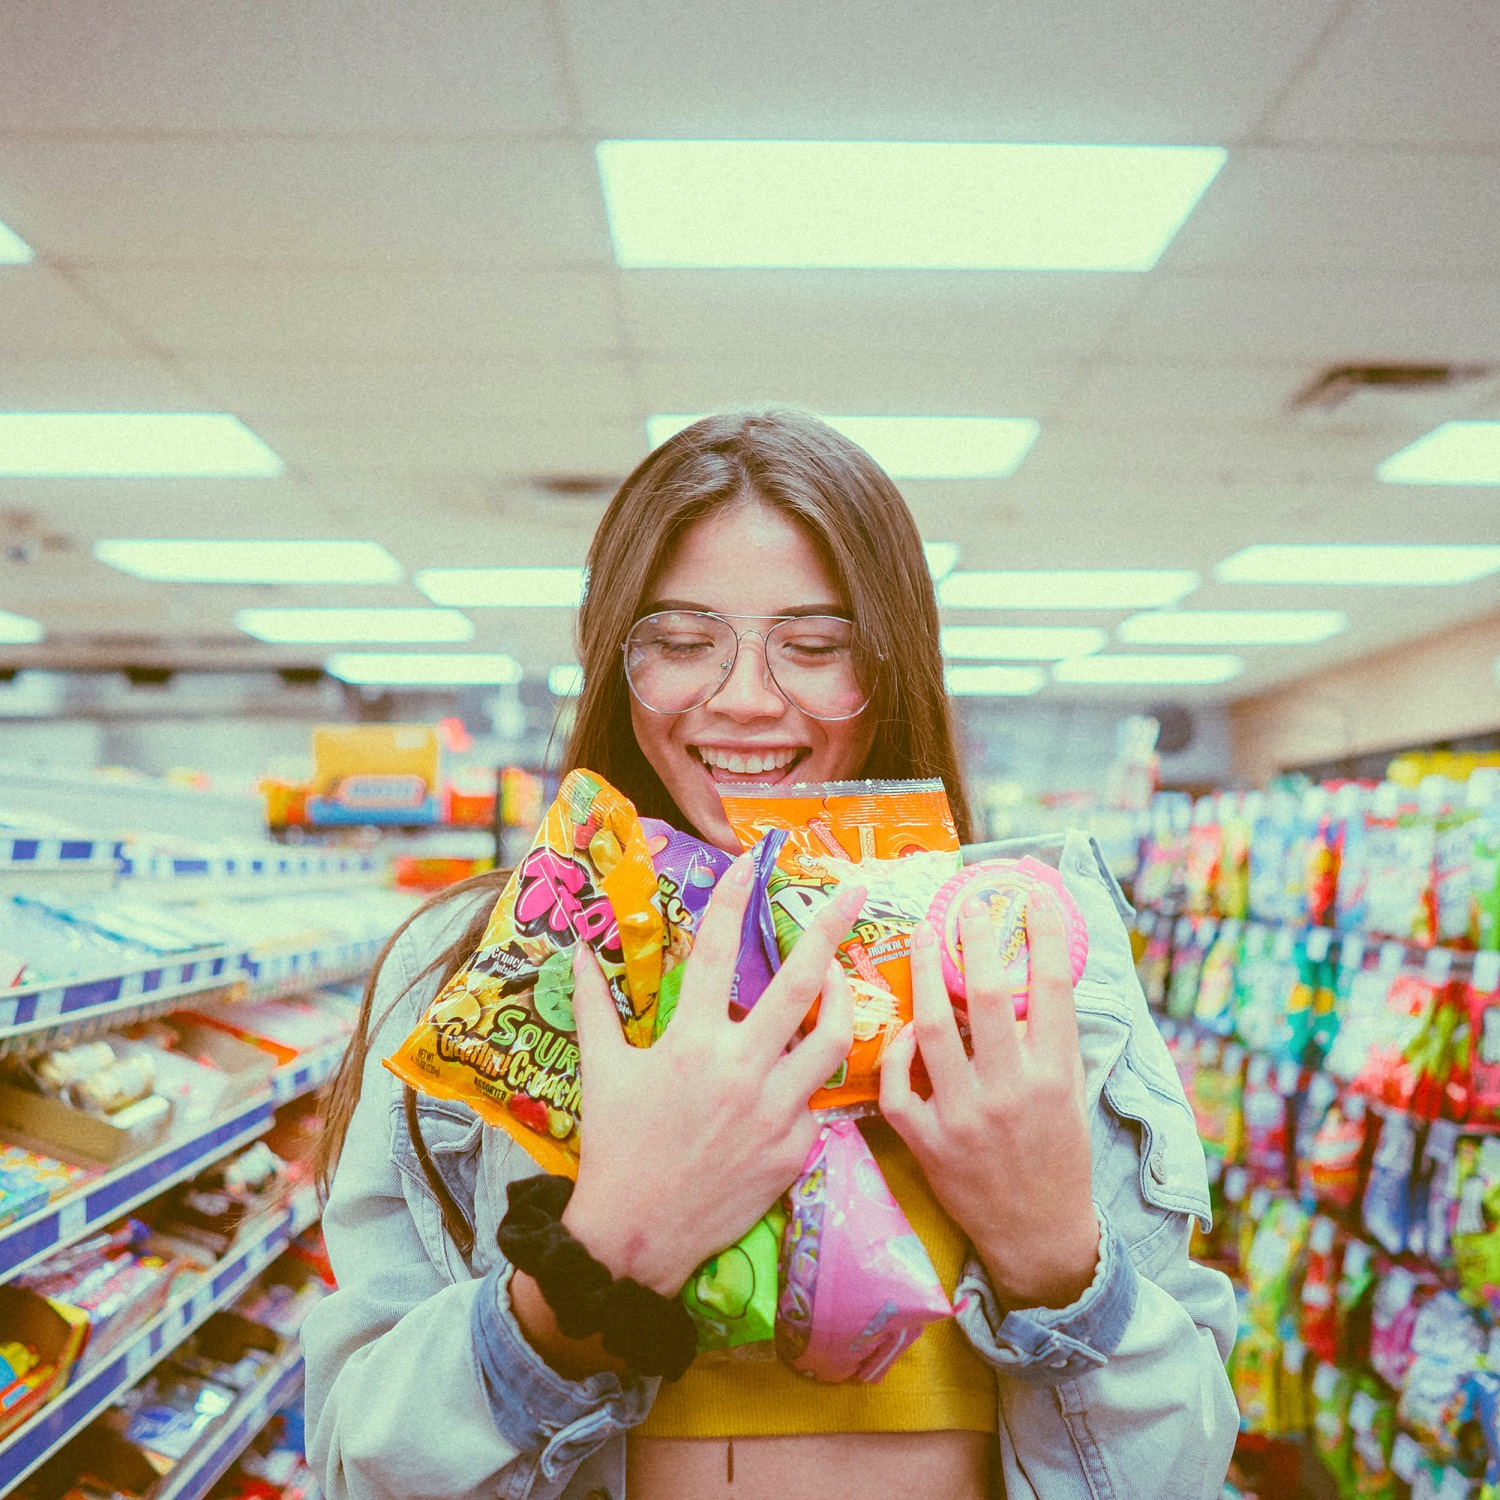 """Candy Company's """"Slack-fill"""" Practice Deceives Customers"""